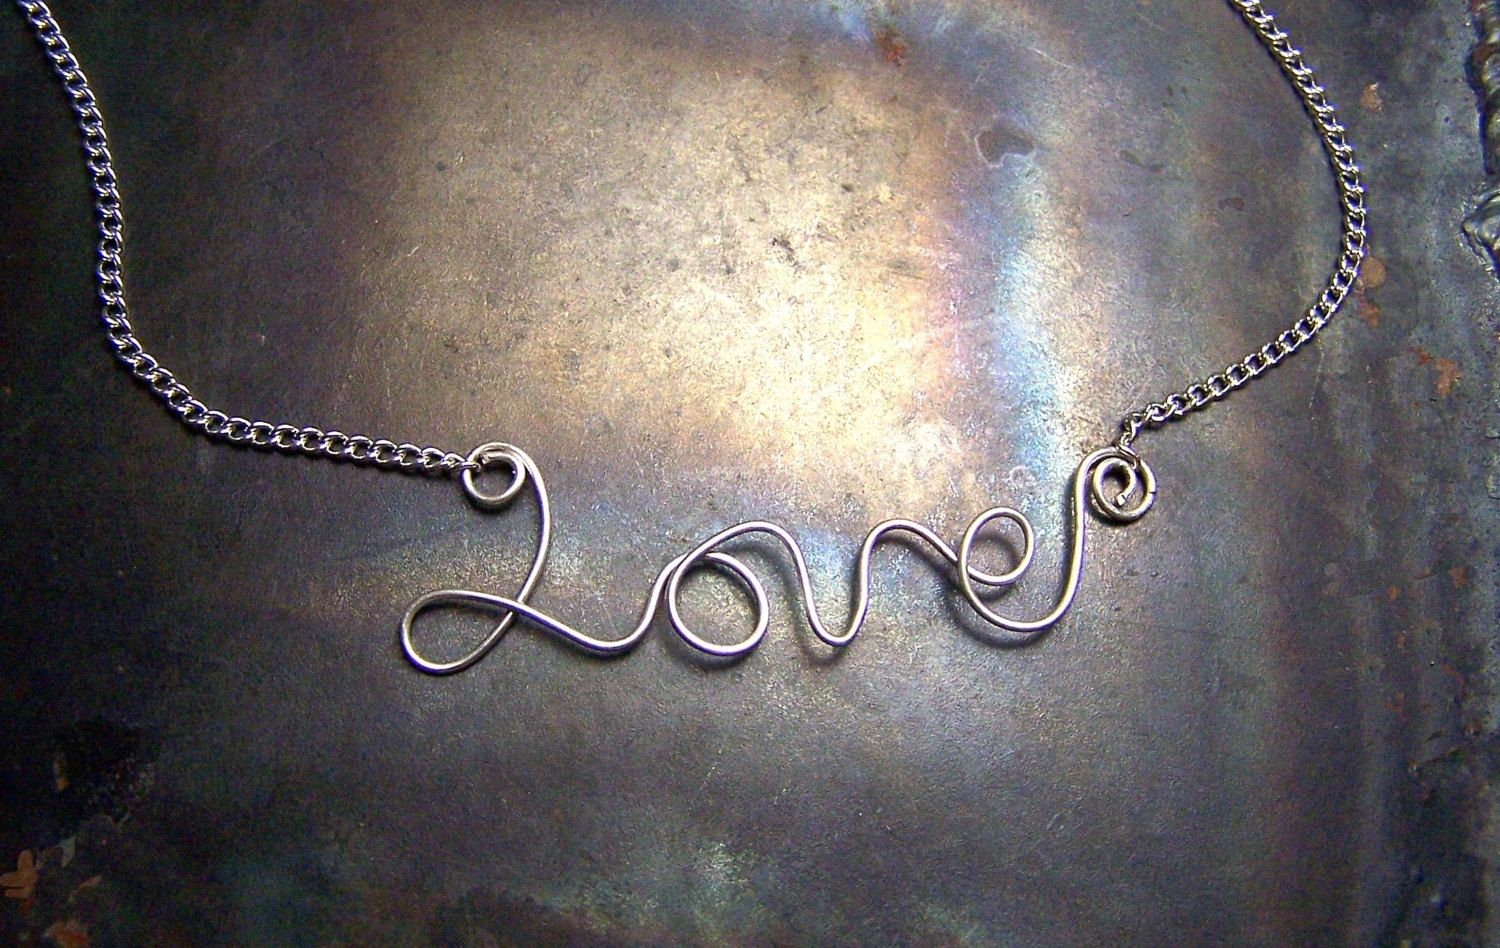 Hand crafted love necklace sterling silver word pendant with chain custom made love necklace sterling silver word pendant with chain cursive word script aloadofball Choice Image